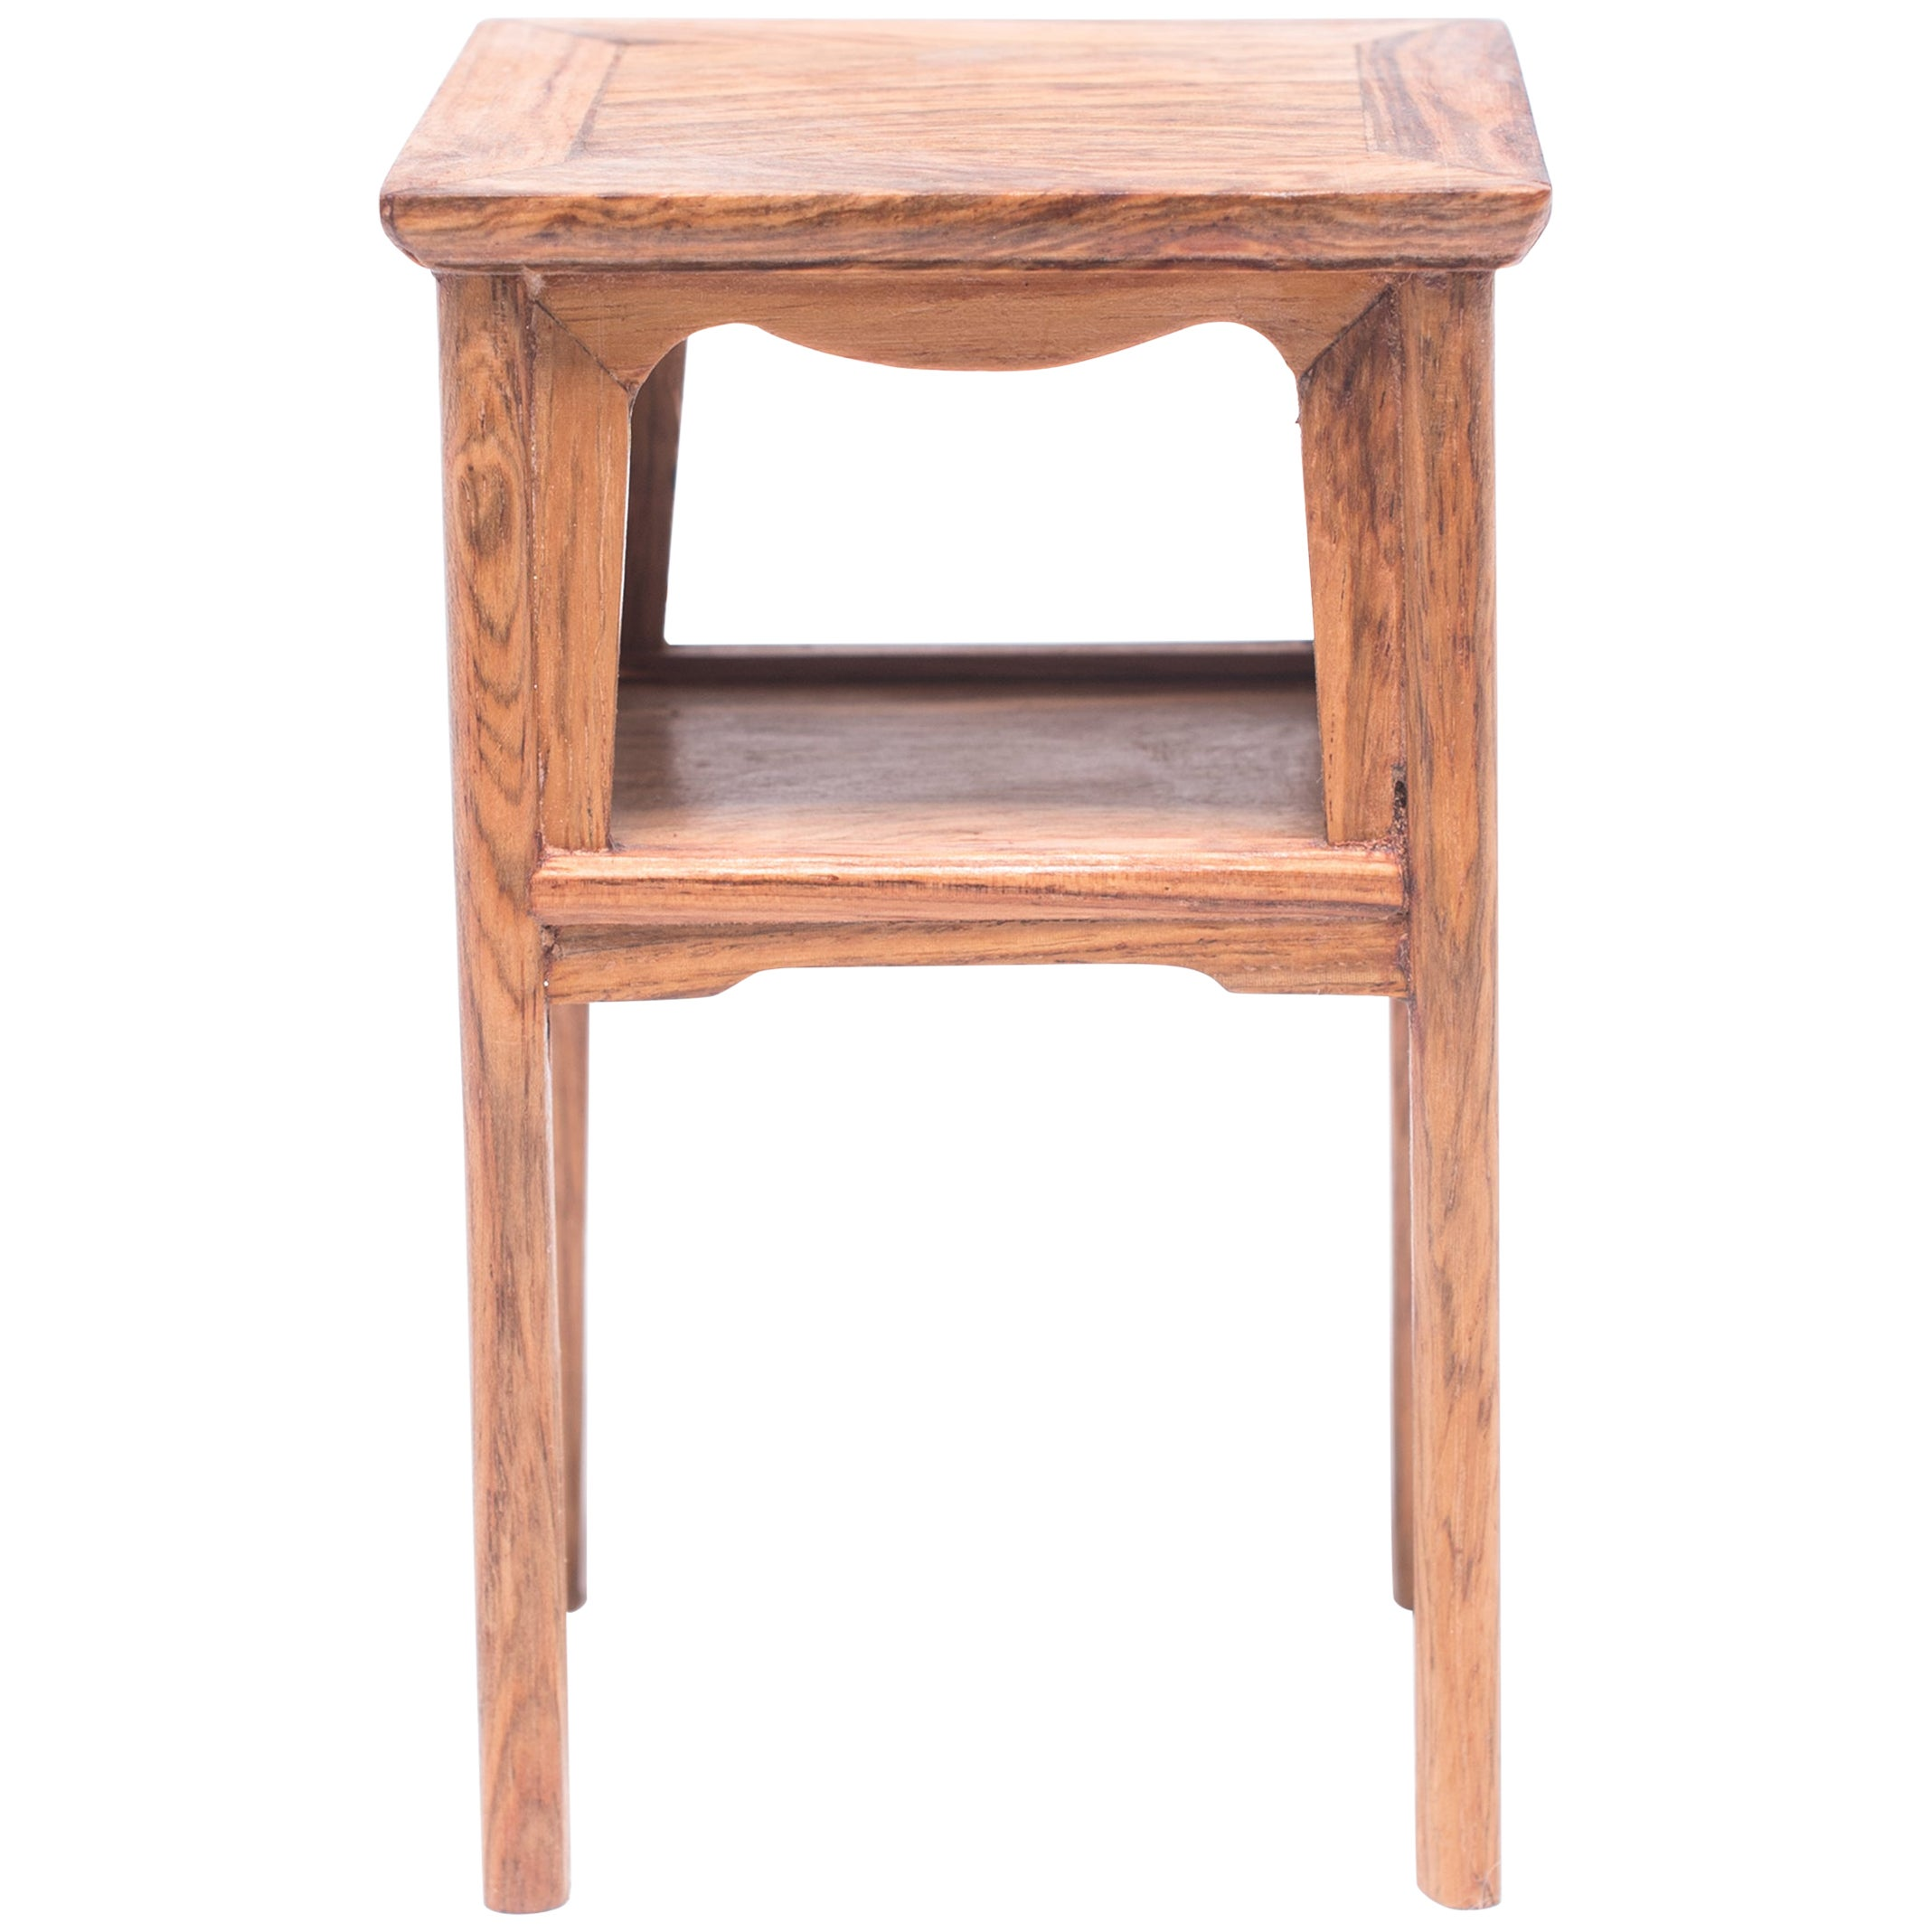 Miniature Chinese Square Side Table